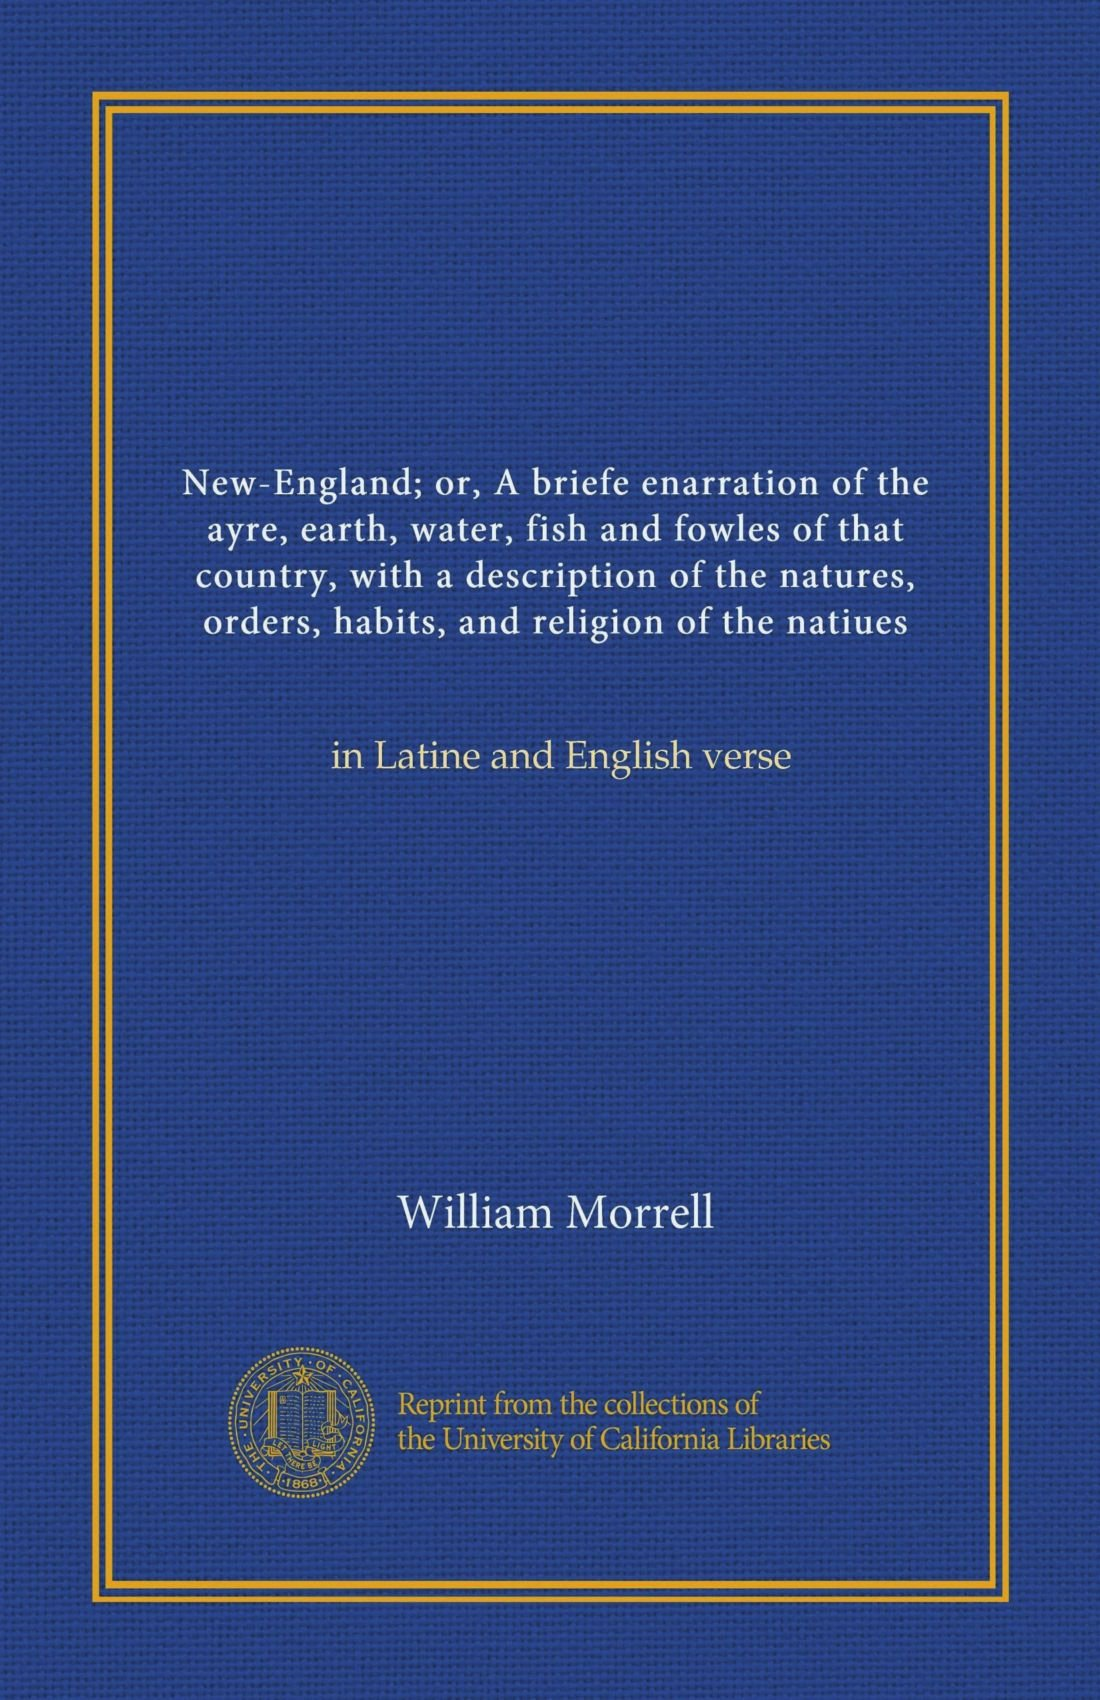 New-England; or, A briefe enarration of the ayre, earth, water, fish and fowles of that country, with a description of the natures, orders, habits, ... of the natiues: in Latine and English verse PDF